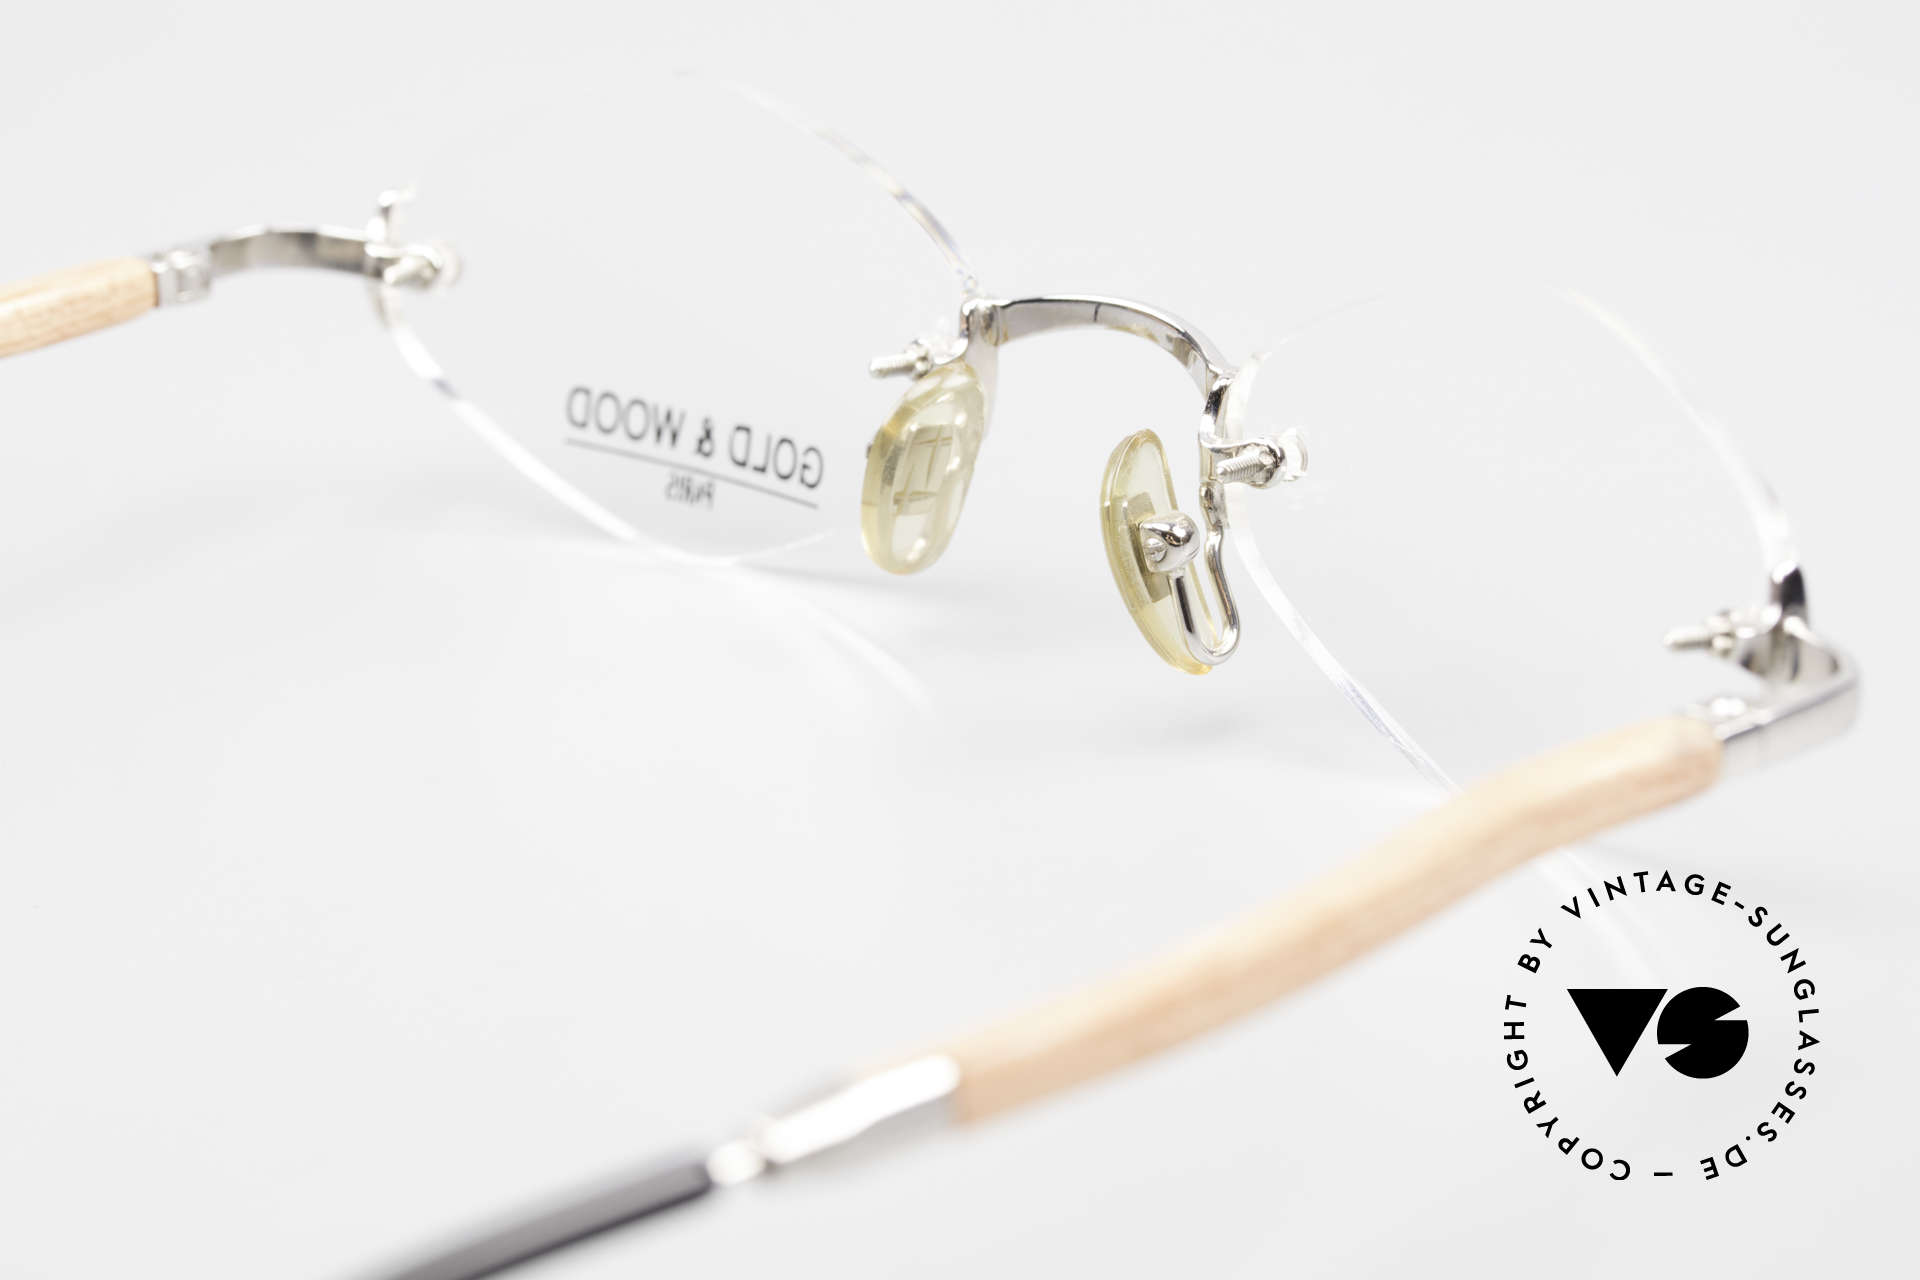 Gold & Wood S02 Luxury Rimless Spectacles, Size: medium, Made for Men and Women